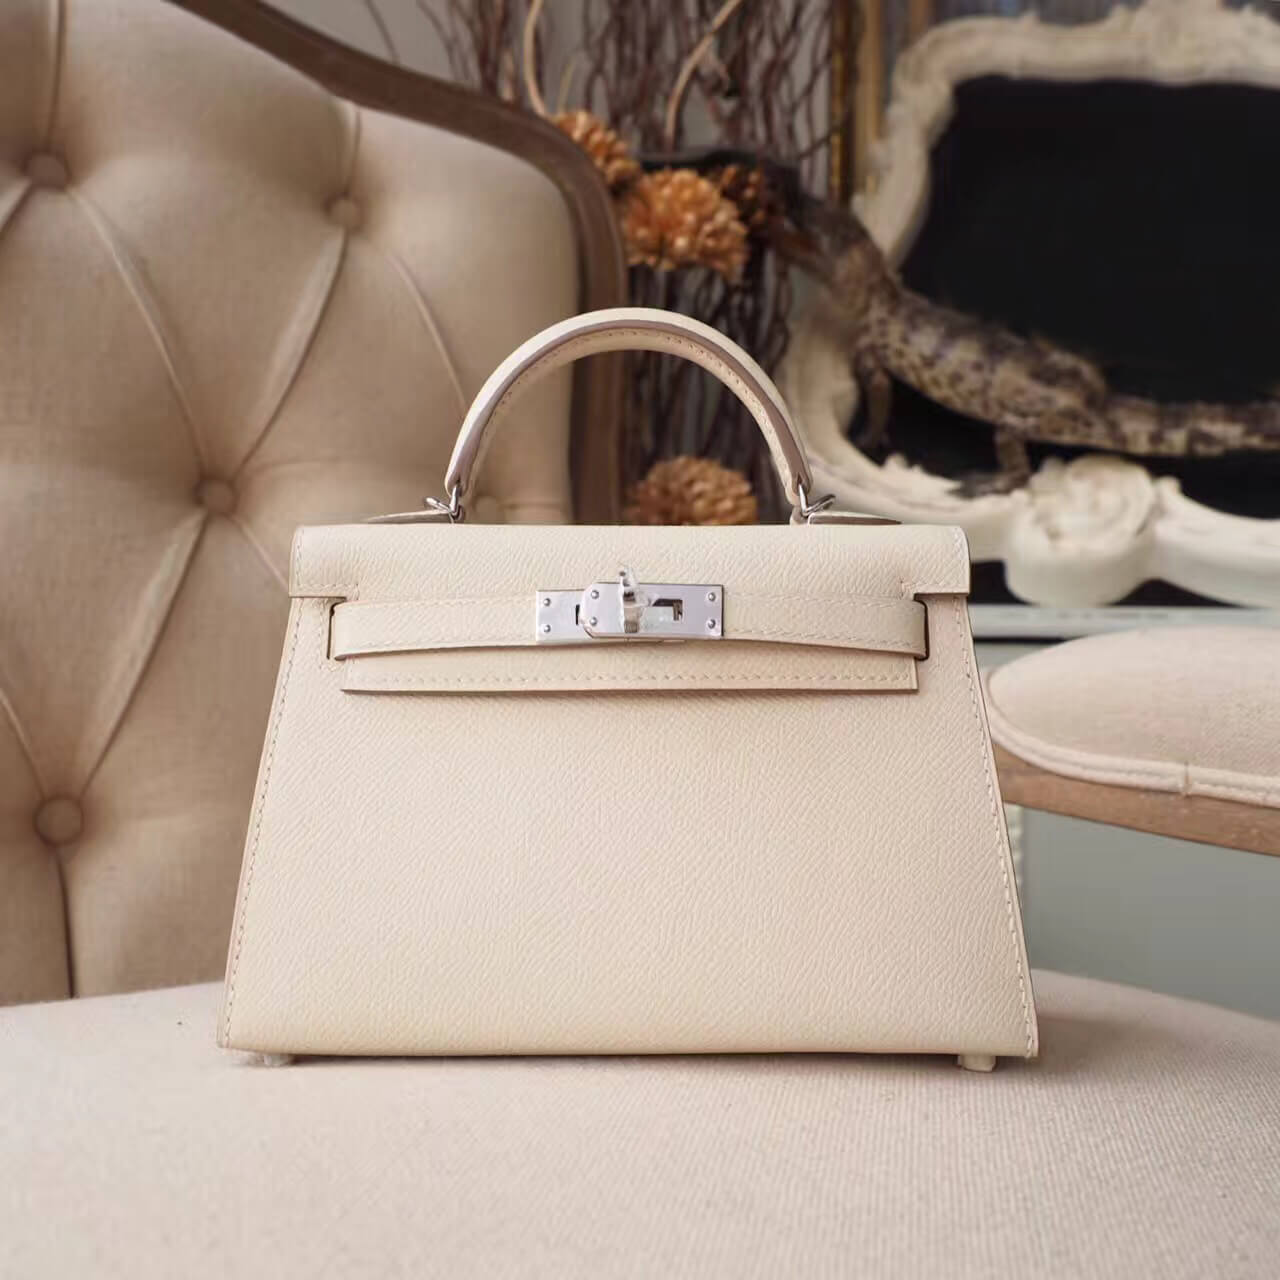 Hermes Mini Kelly 20 II Bag in ck10 Craie Epsom PHW